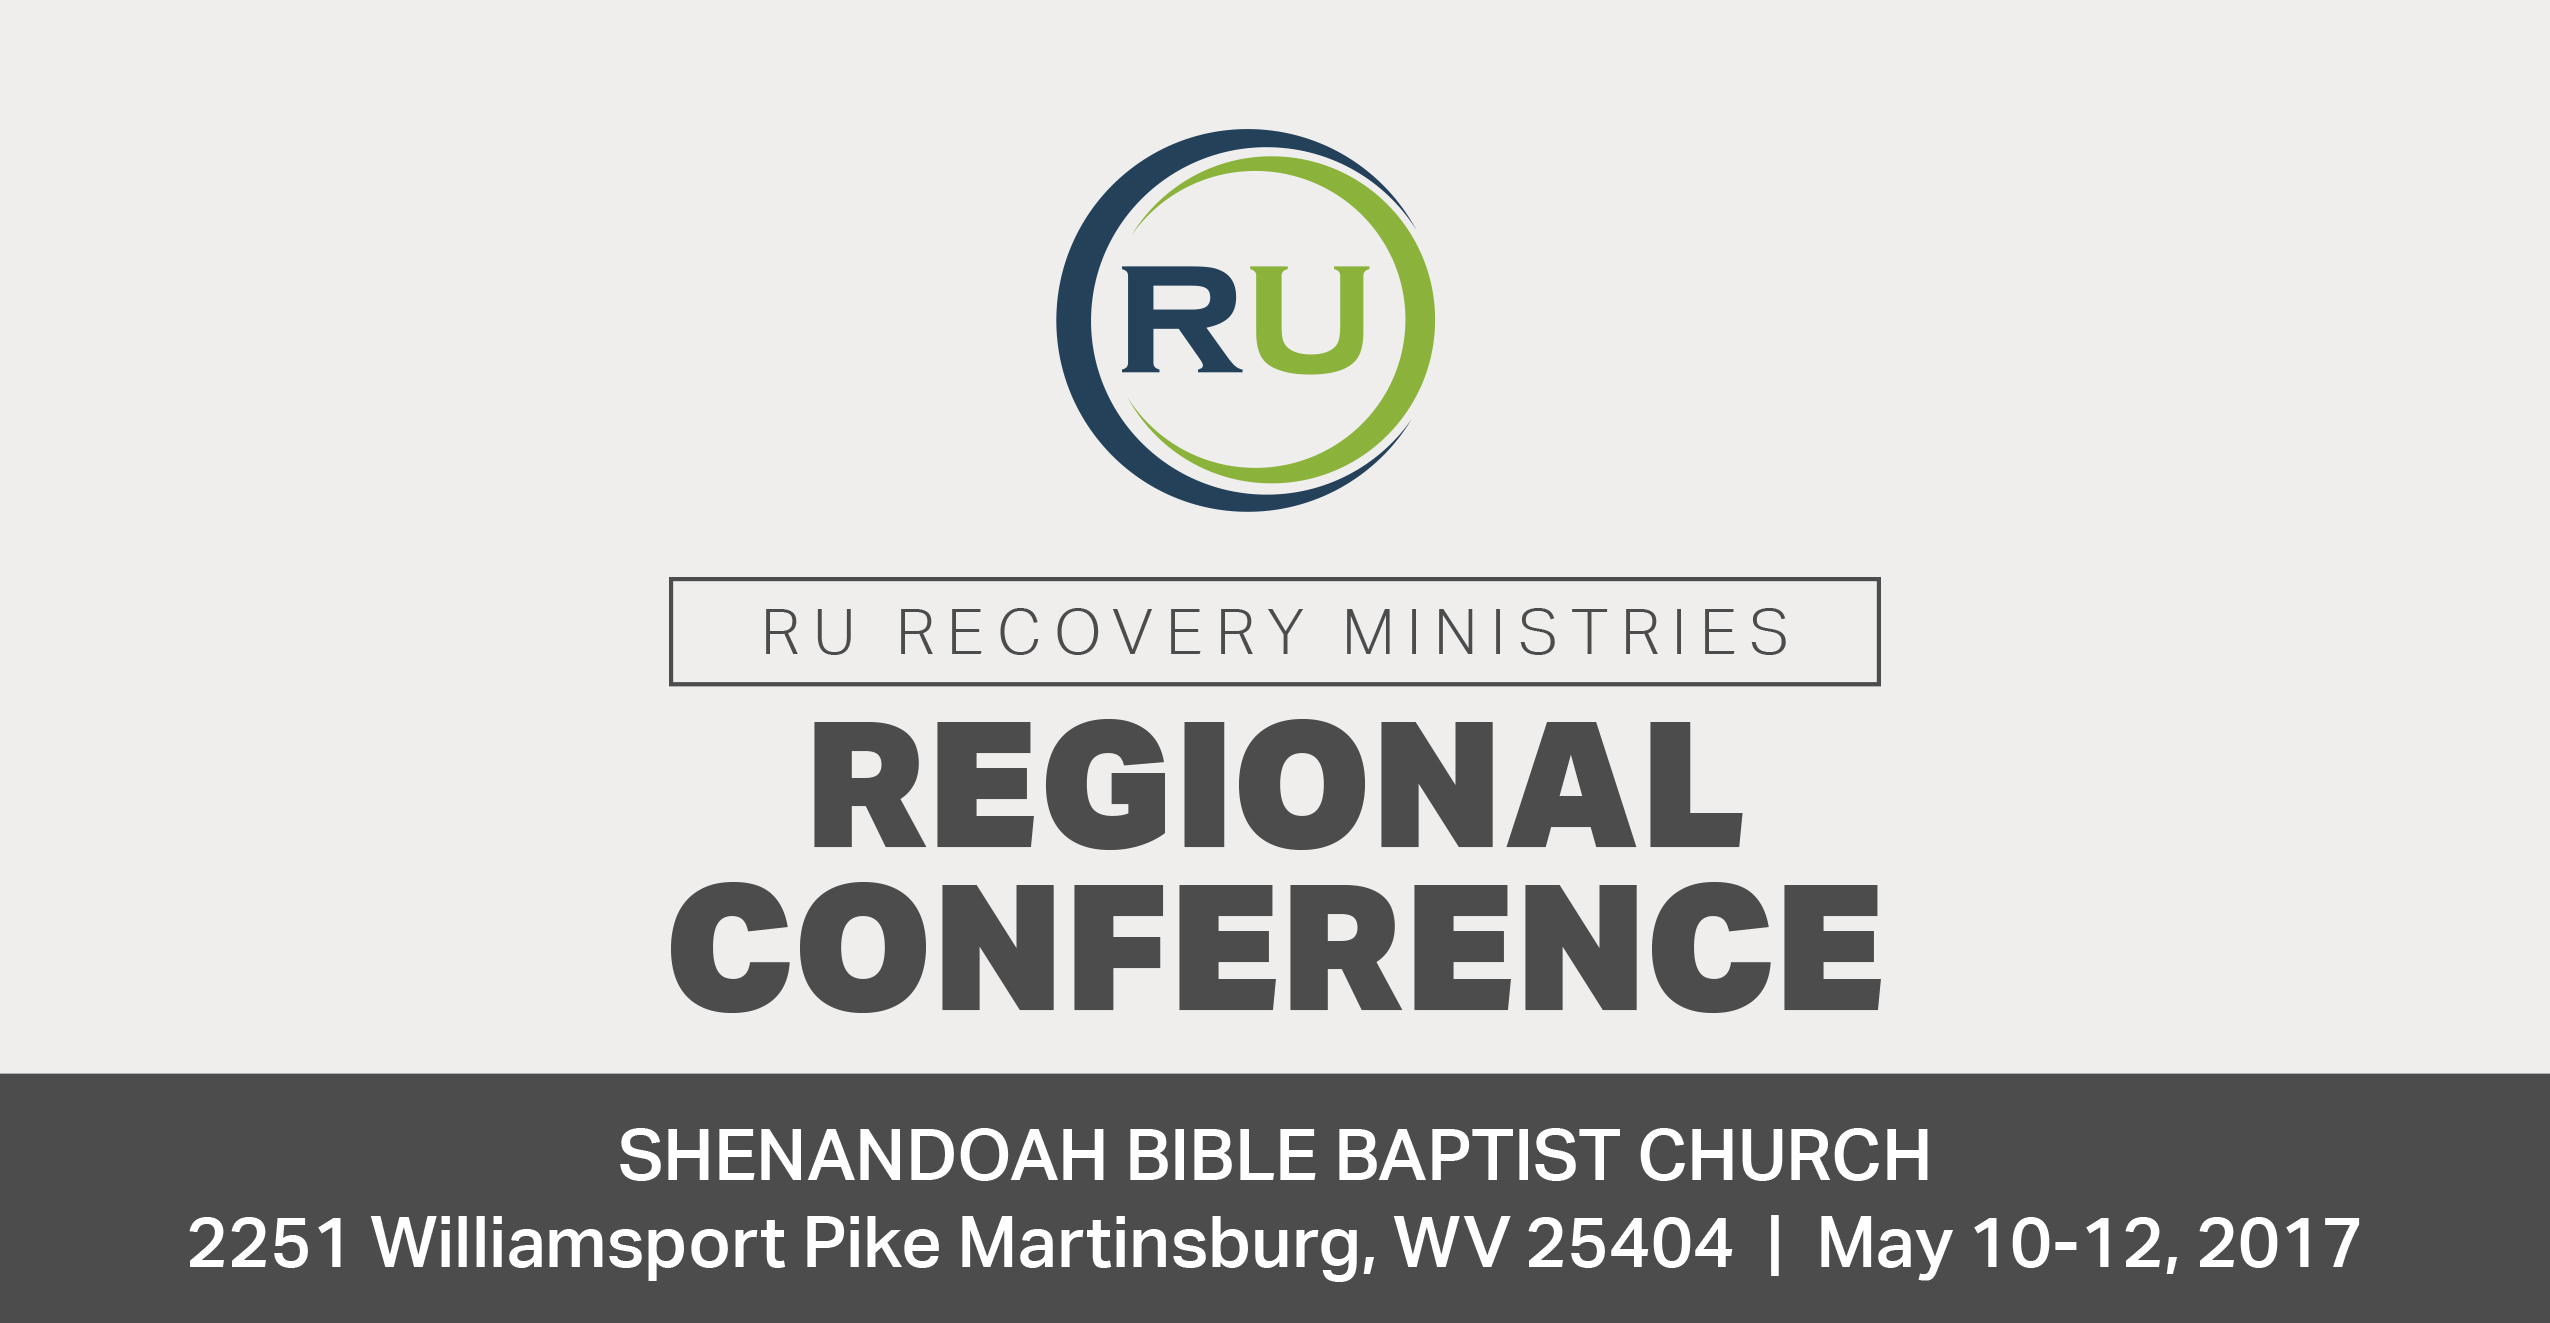 RU Recovery Ministries Regional Conference Shenandoah Bible